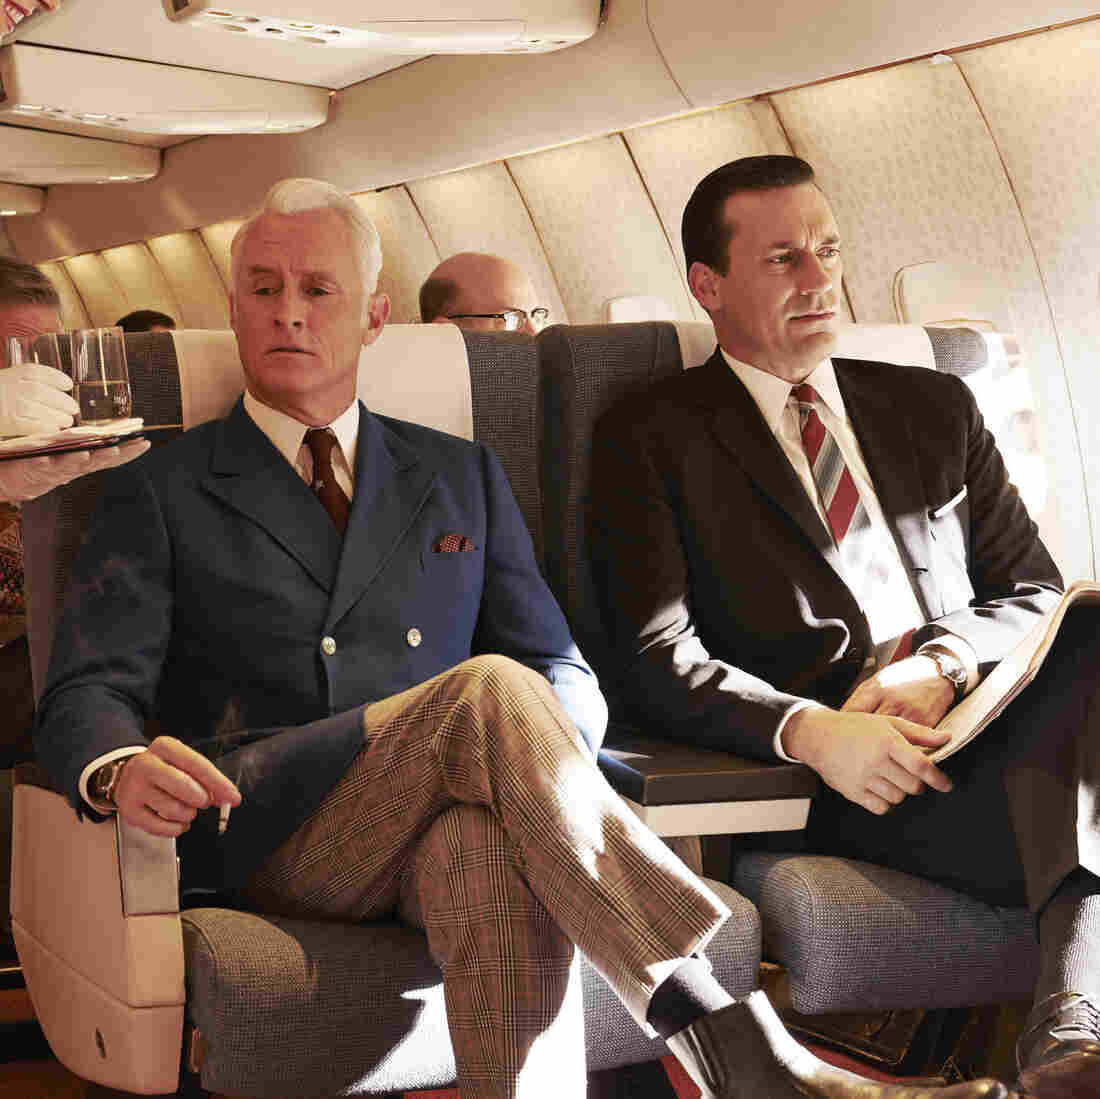 John Slattery (left) reprises his role as Roger Sterling in the seventh and final season of Mad Men.